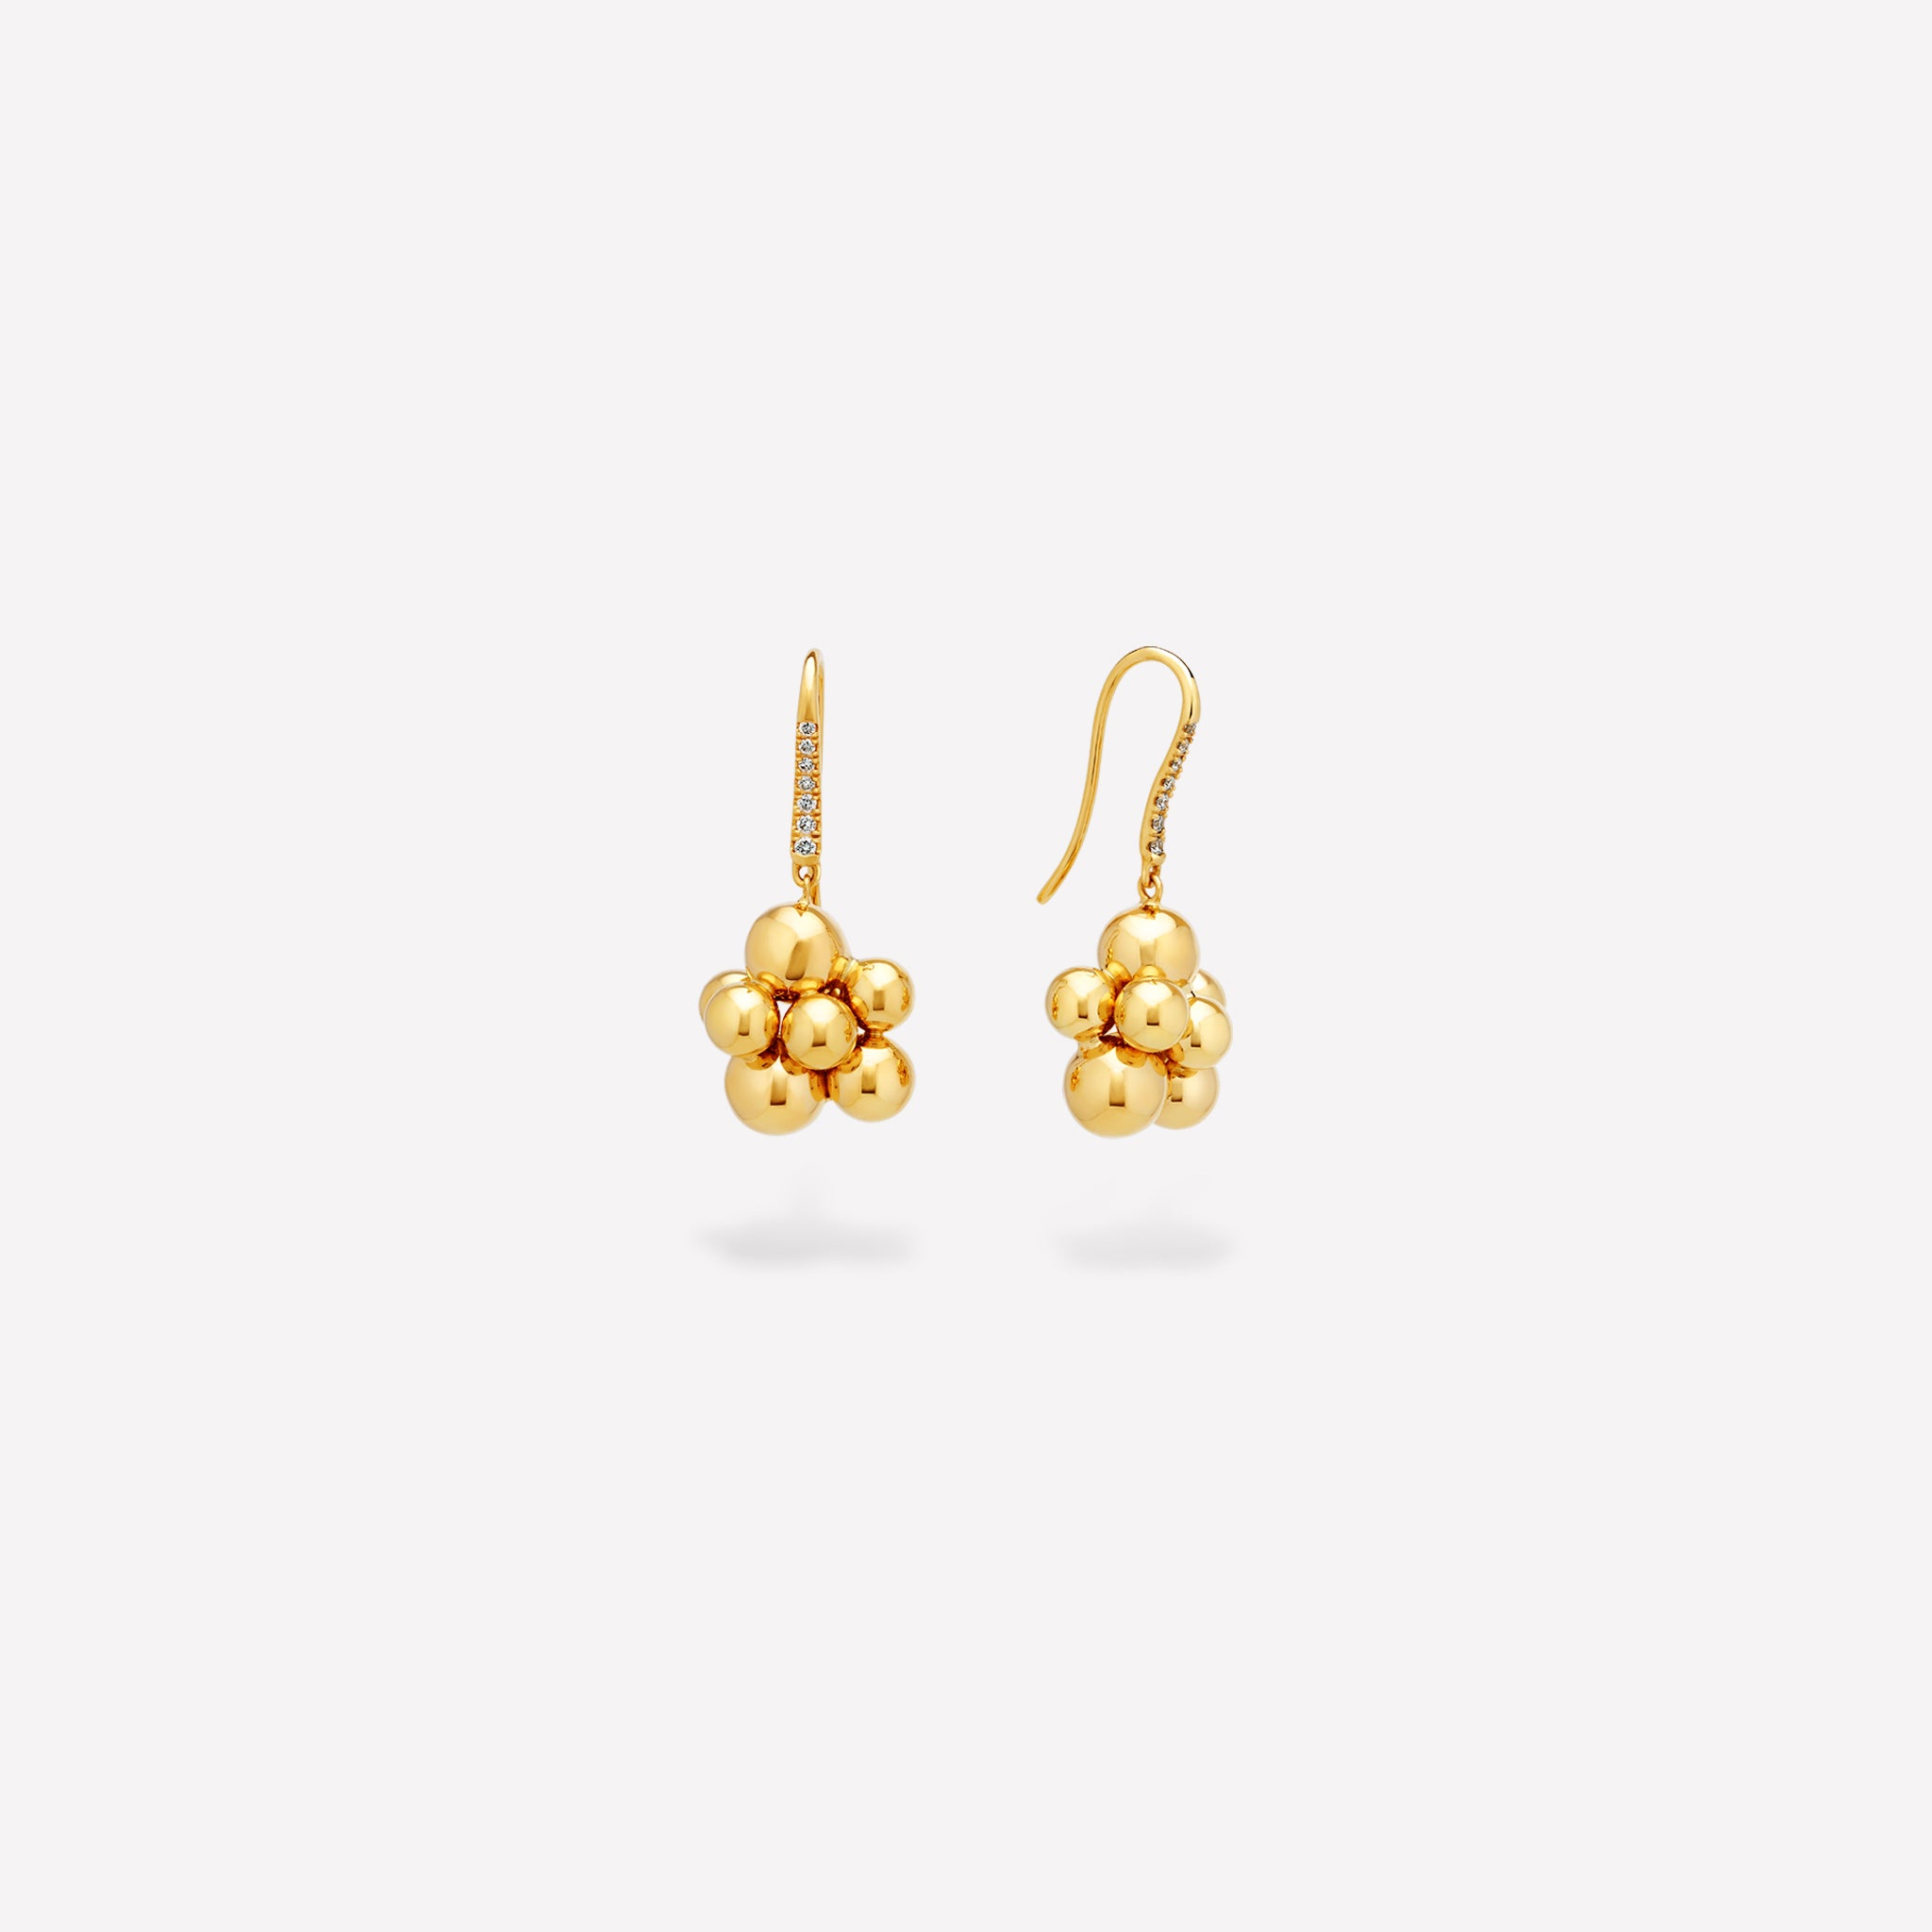 marinab.com, Mini Atomo Pavé Hook Earrings